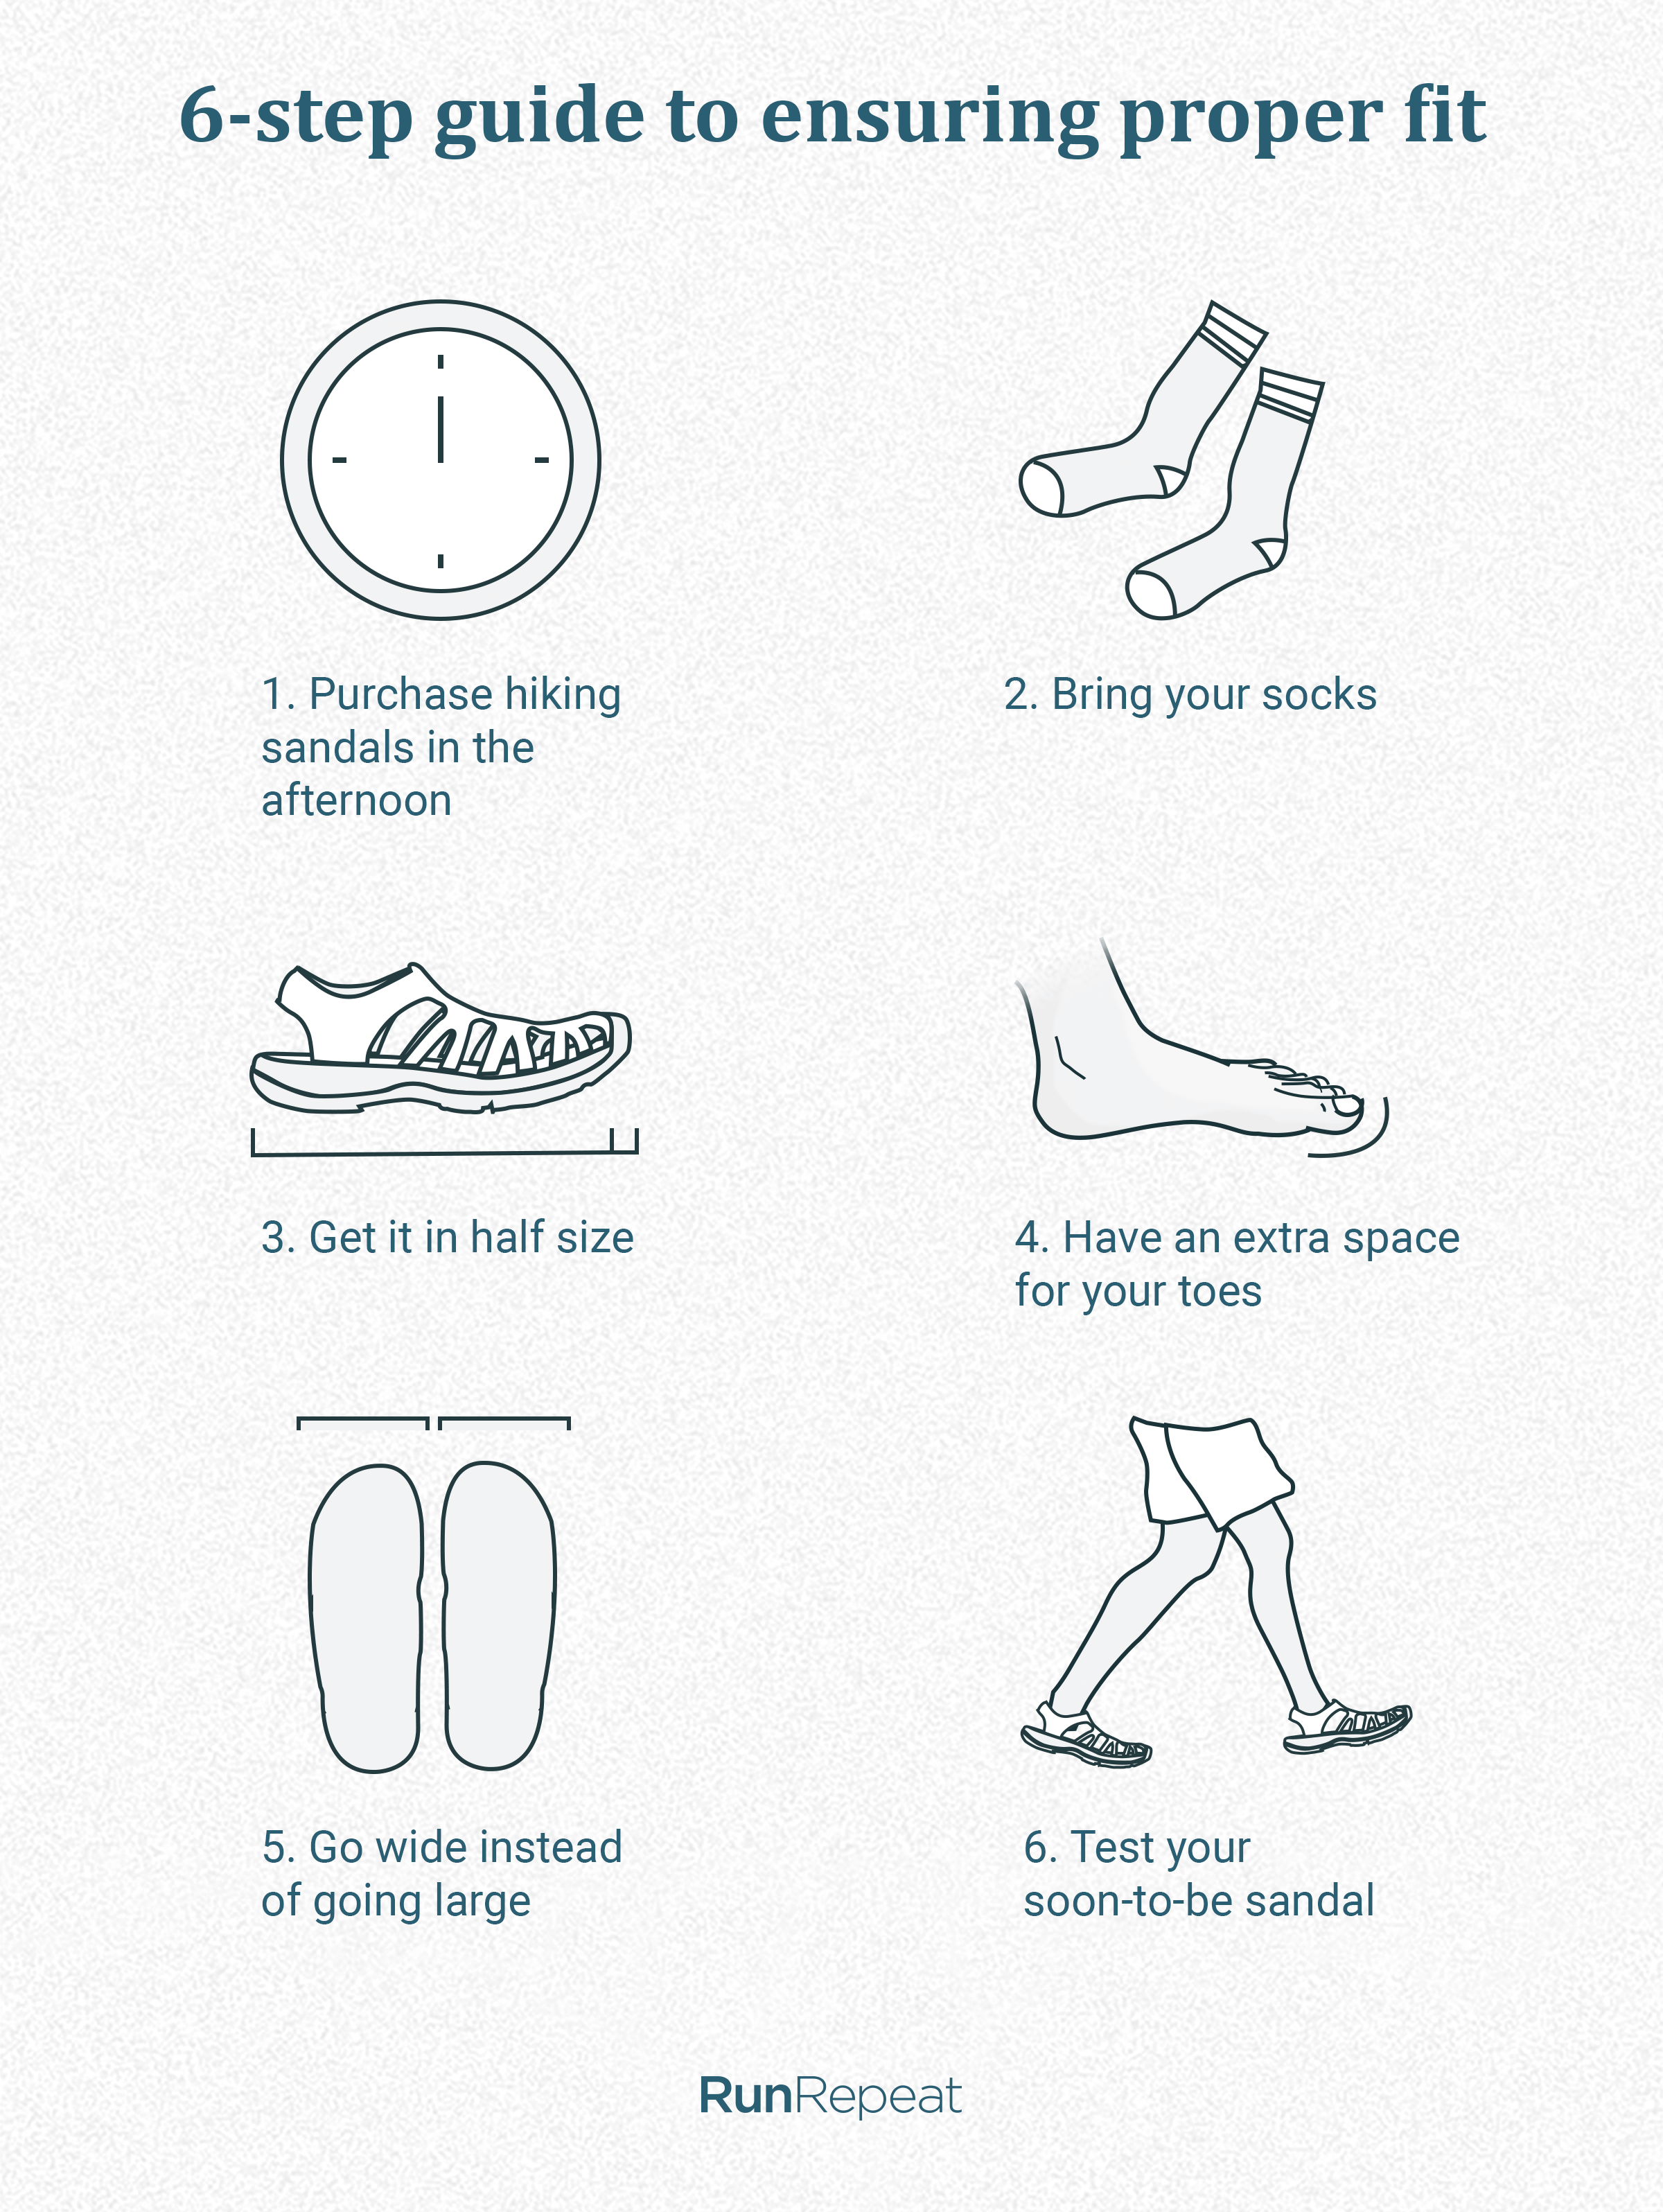 6-step guide to ensuring proper fit.png